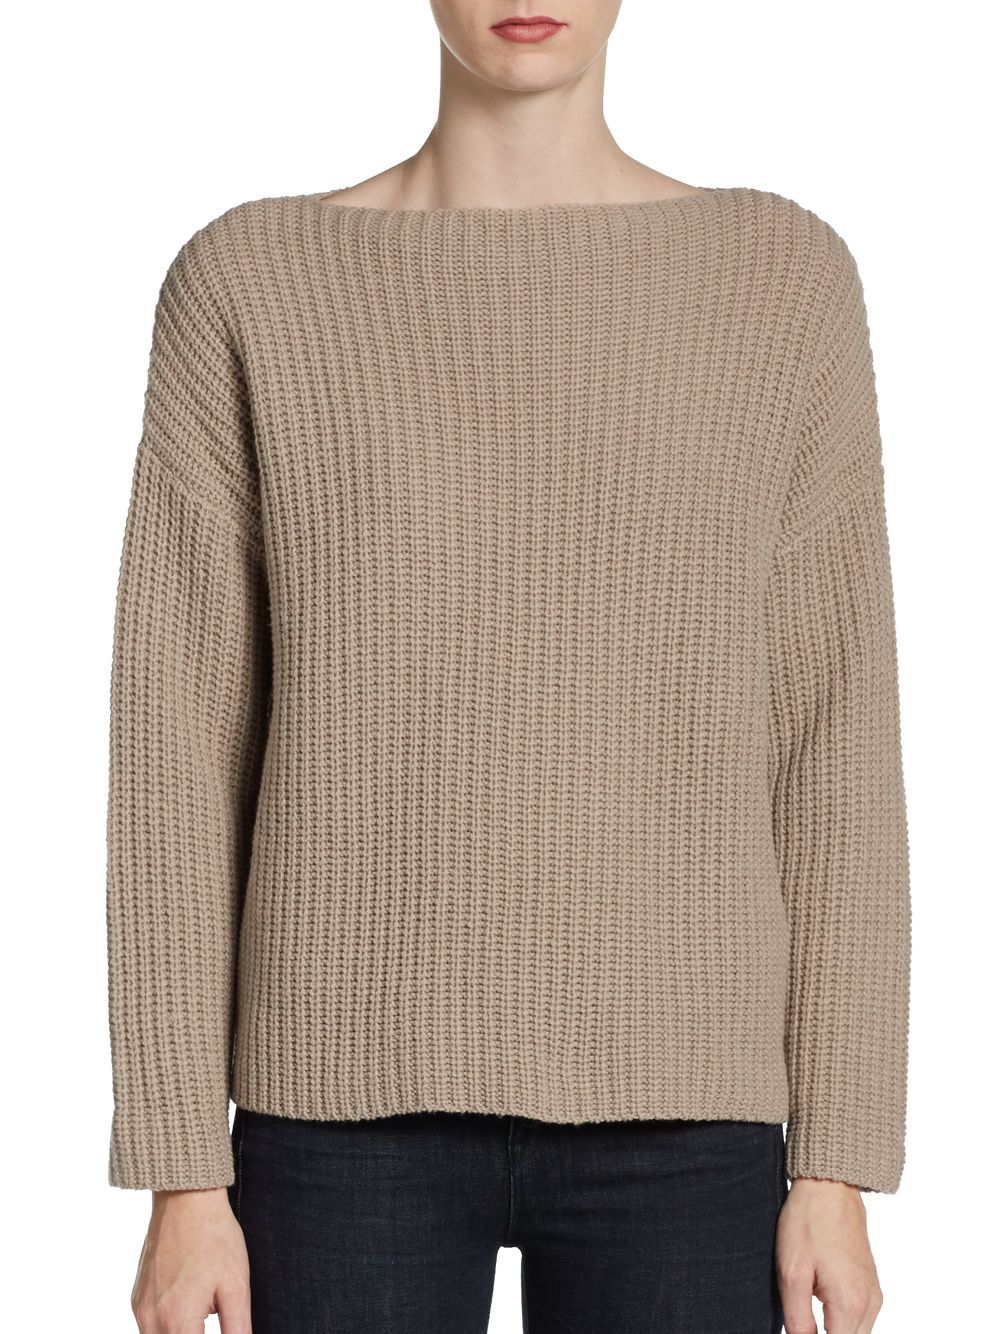 Lyst - Vince Ribbed Boat Neck Sweater in Natural